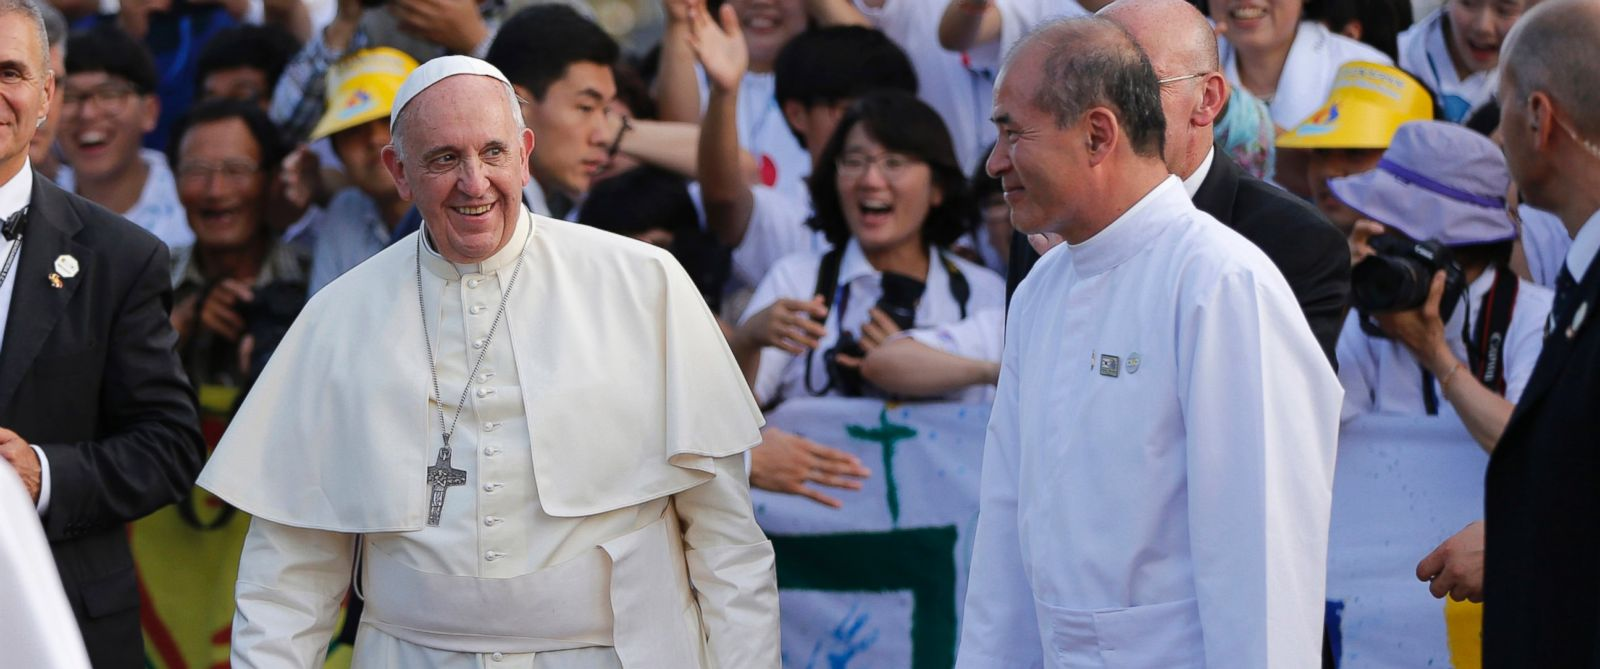 PHOTO: Pope Francis smiles as he is greeted by Catholic faithfuls upon his arrival at the birthplace of Saint Kim Taegon Andrea, also known as Saint Andrew Kim Taegon, the first Korean-born Catholic priest in Dangjin, South Korea, Aug. 15, 2014.